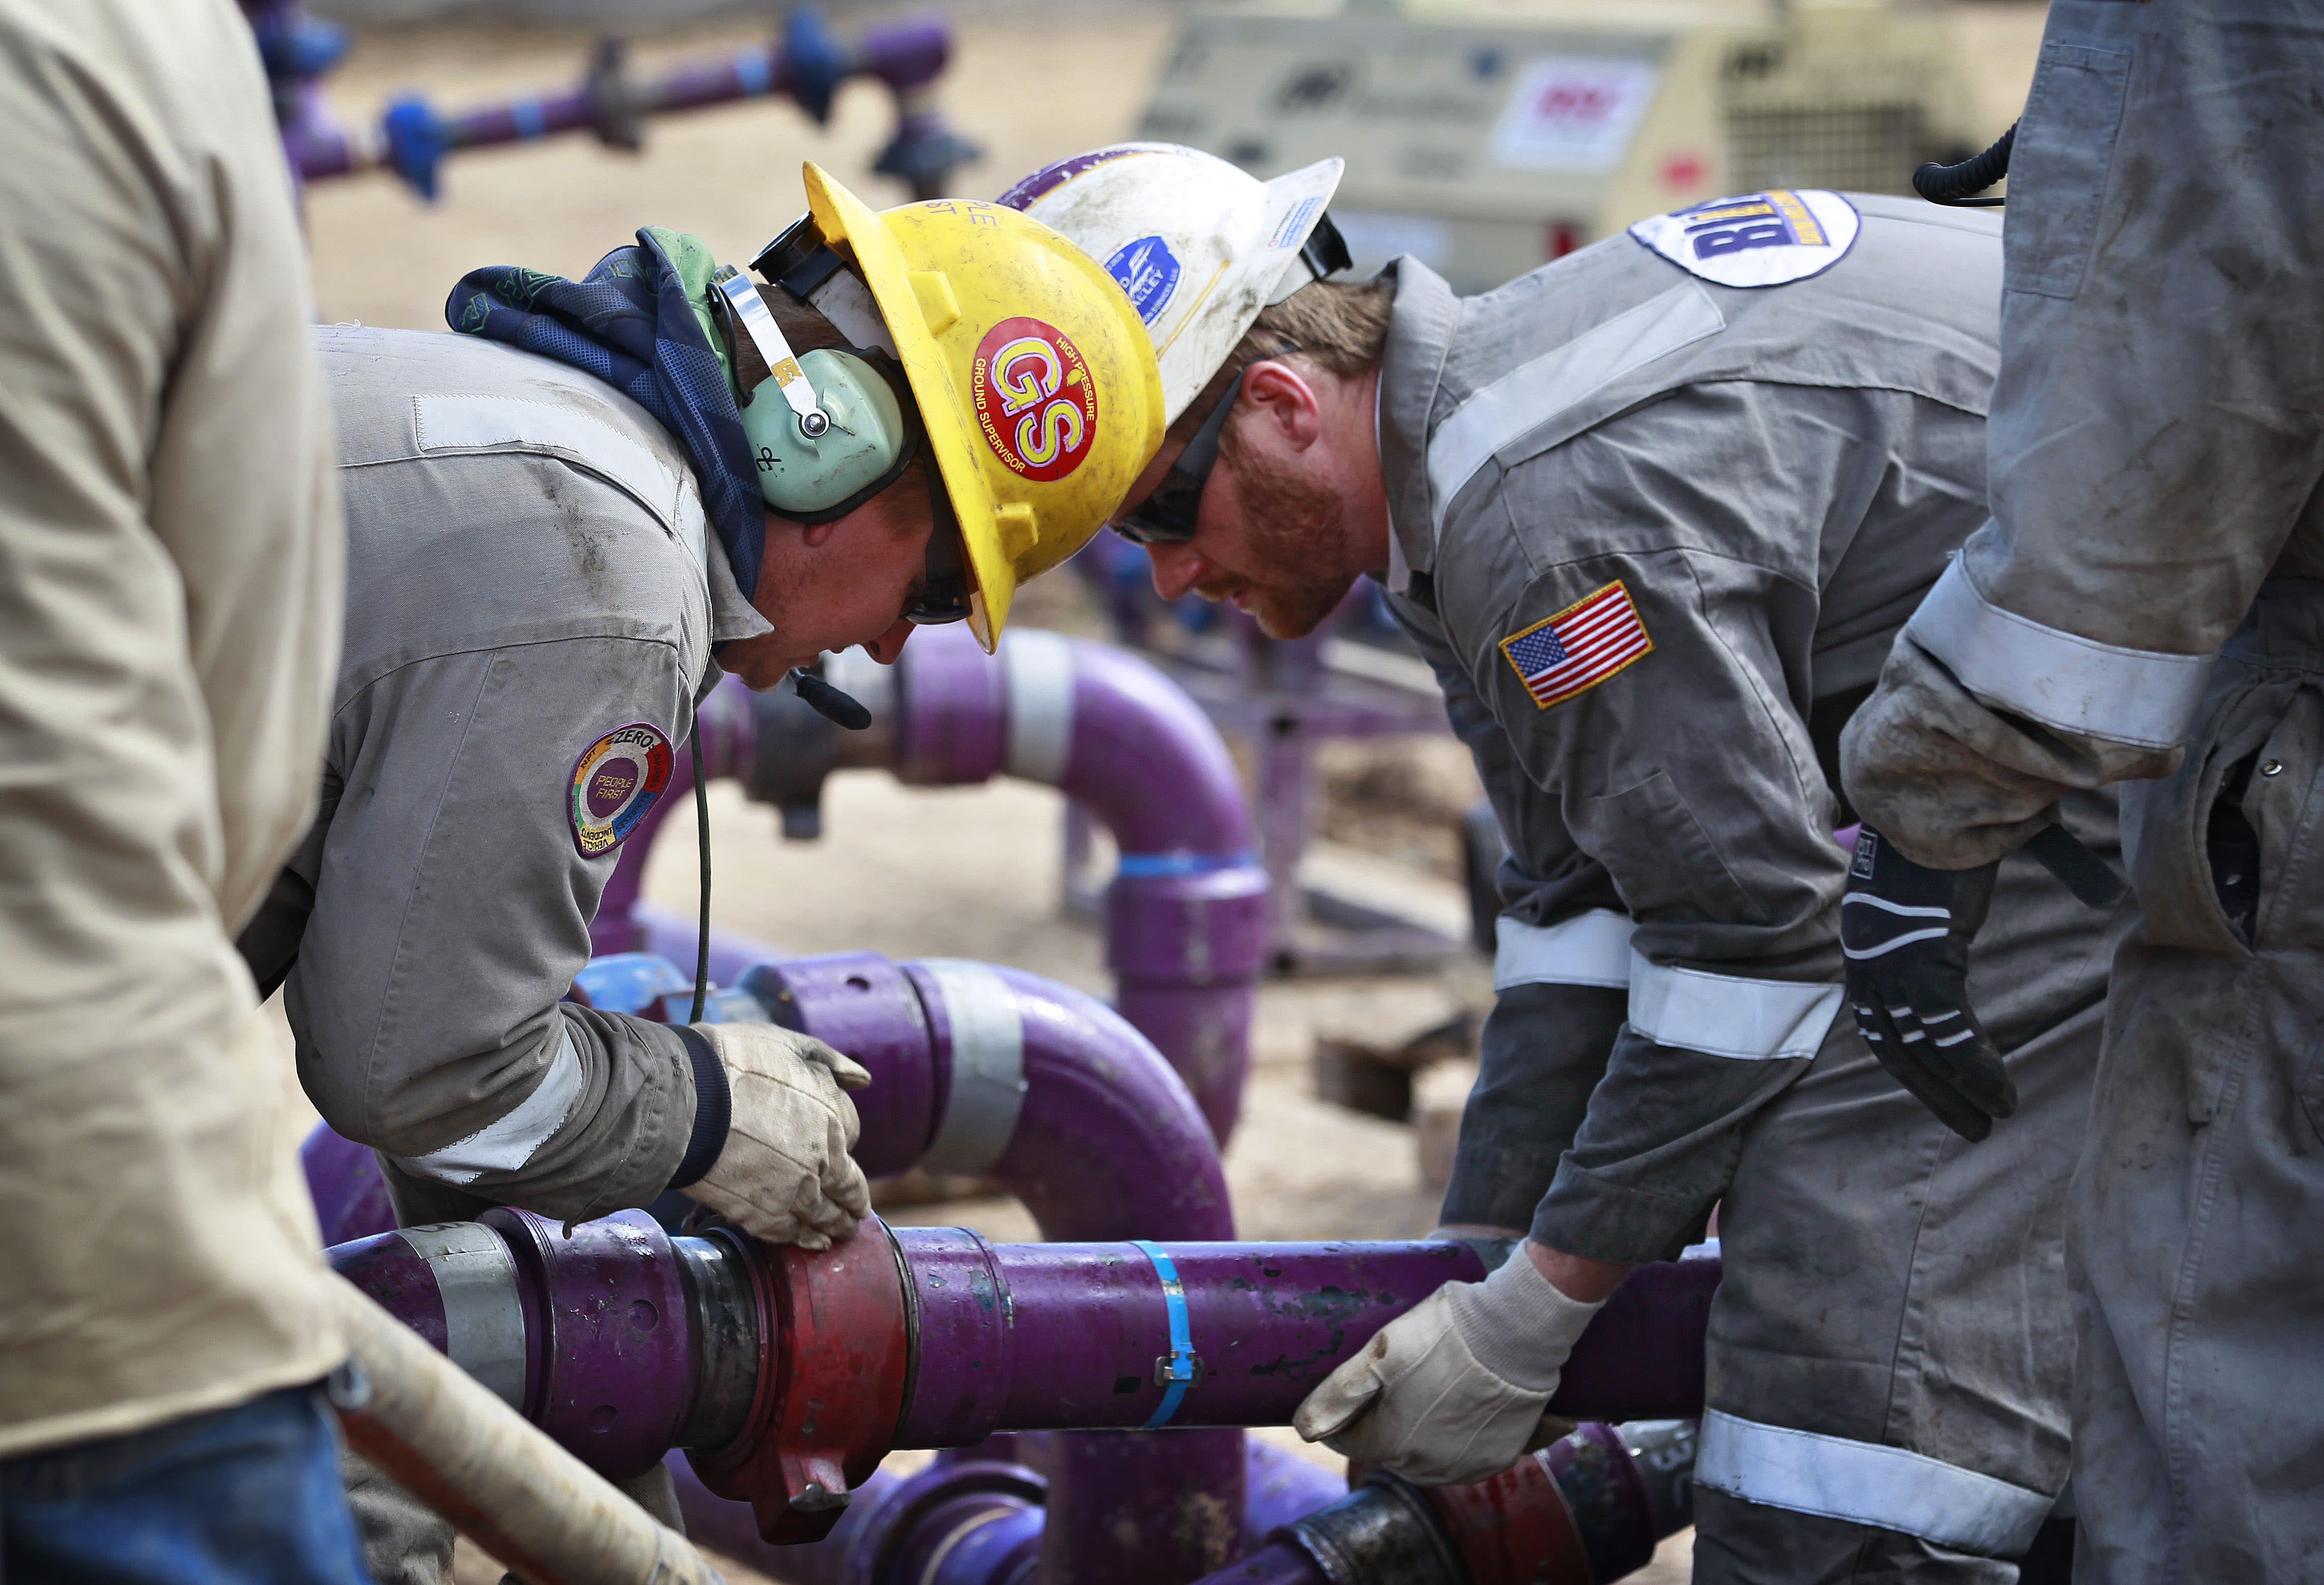 In this March 29, 2013, photo, workers adjust piping during a short pause in water pumping during a natural gas hydraulic fracturing operation at an Encana Oil & Gas (USA) Inc. drilling site outside Rifle, in western Colorado. The first experimental use of hydraulic fracturing was in 1947, and more than 1 million U.S. oil and gas wells have been fracked since, according to the American Petroleum Institute. The National Petroleum Council estimates up to 80 percent of natural gas wells drilled in the next decade will require hydraulic fracturing. (AP Photo/Brennan Linsley)